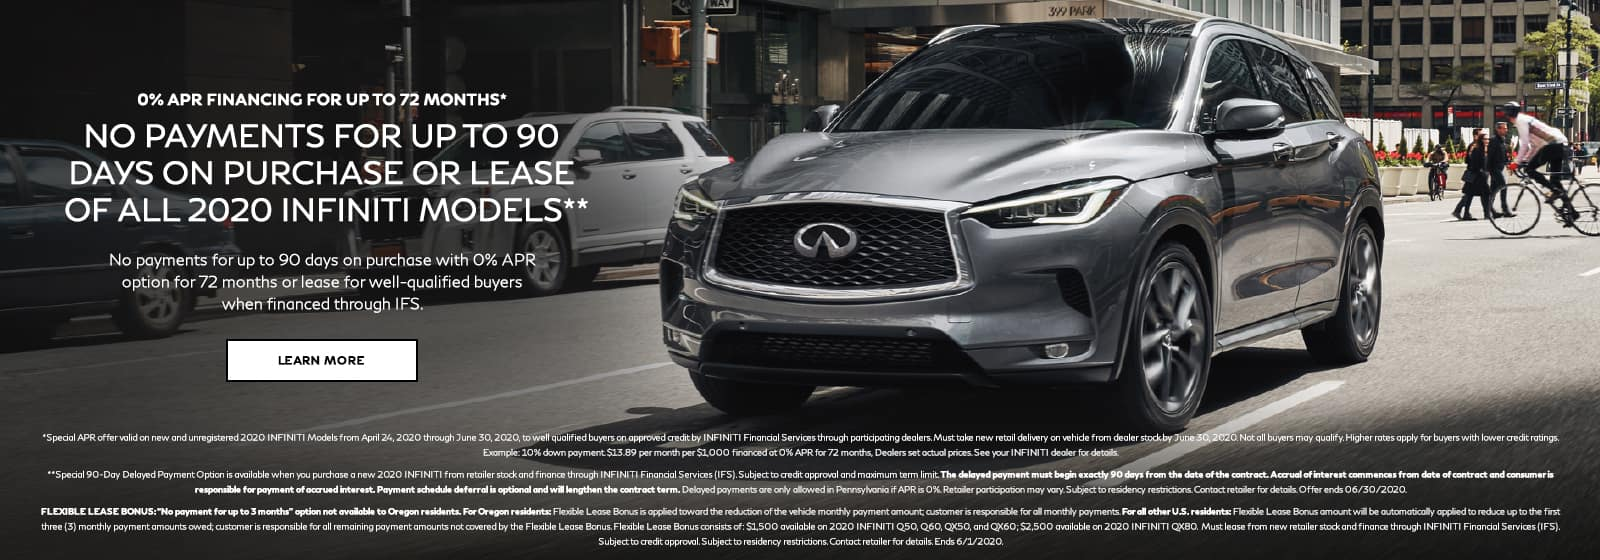 0% APR Financing for 72 months with no payments for 90 days on purchase or lease of all 2020 INFINITI Models. Restrictions may apply. See retailer for complete details.